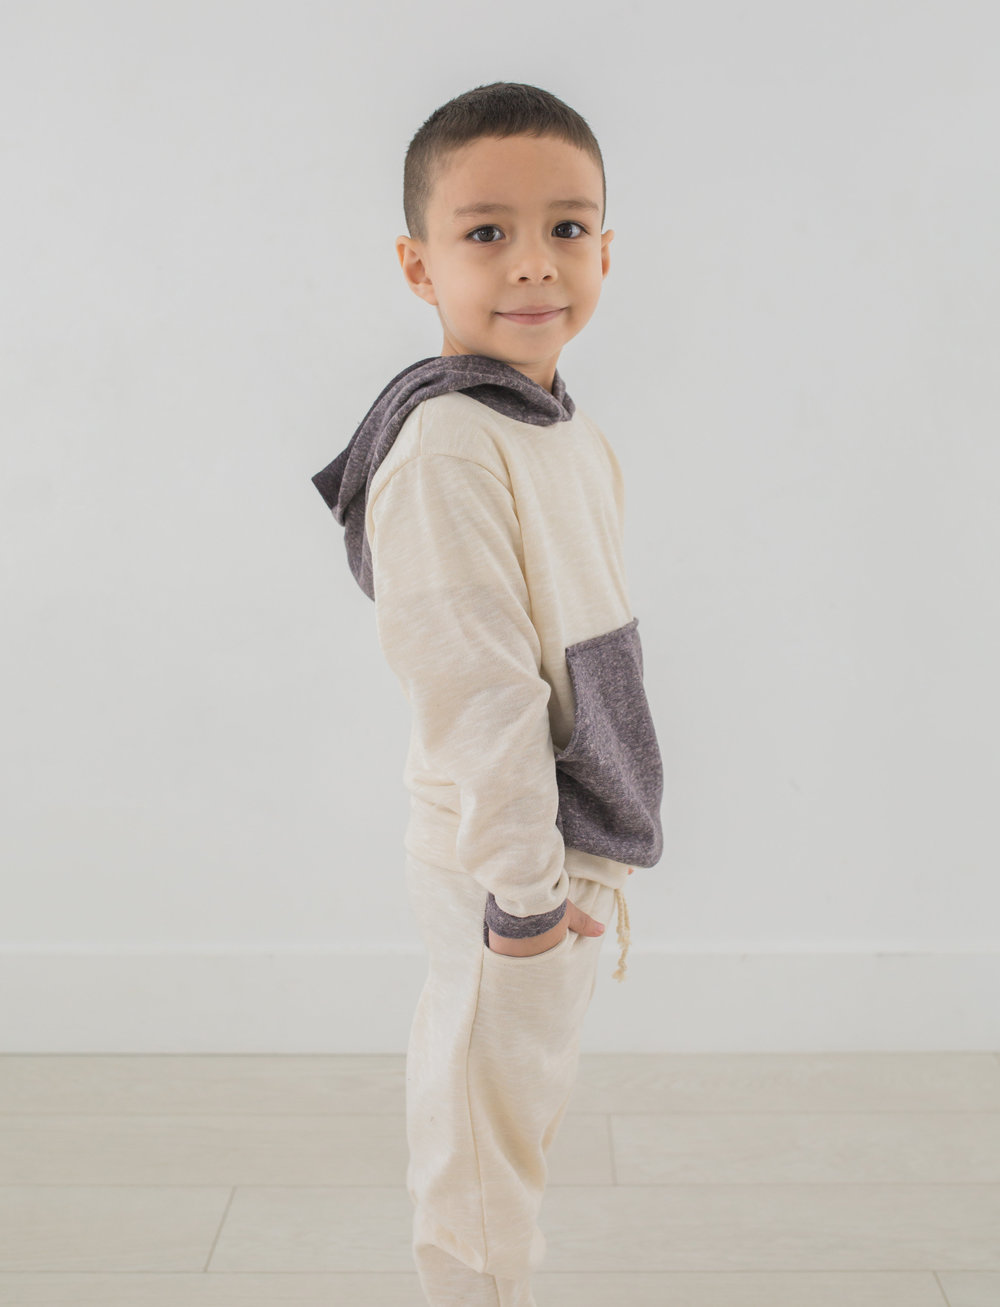 Paradise Kids Clothing-0014.jpg